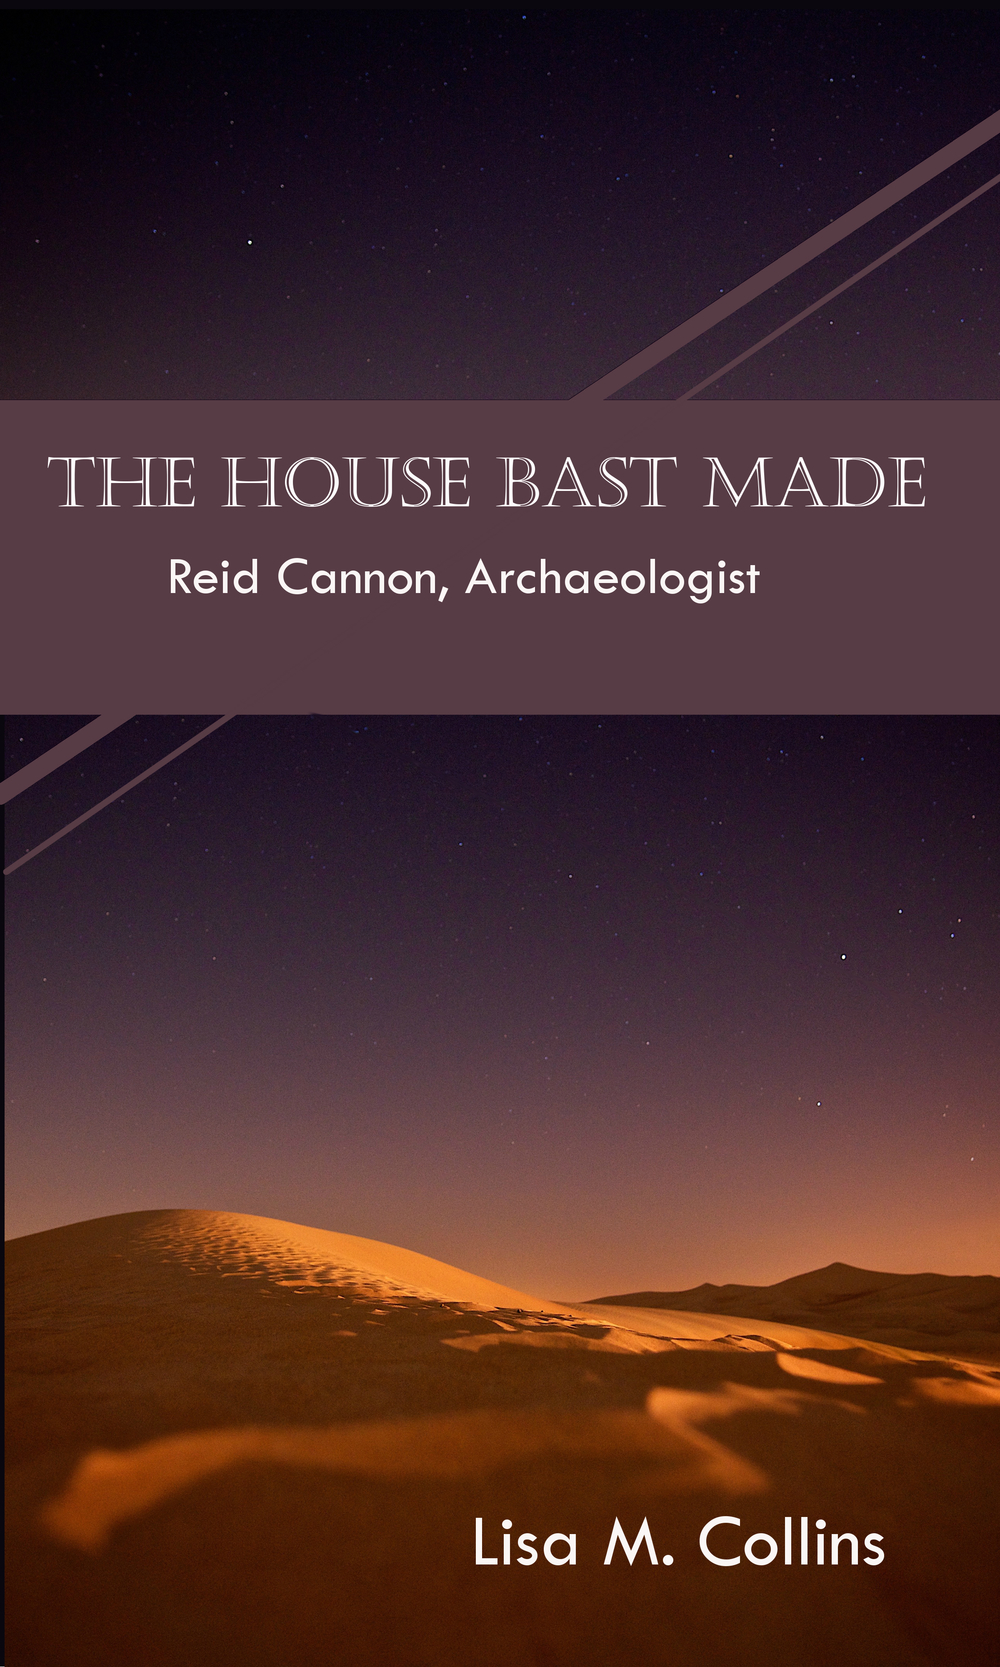 The House Bast Made: Reid Cannon Archaeologist